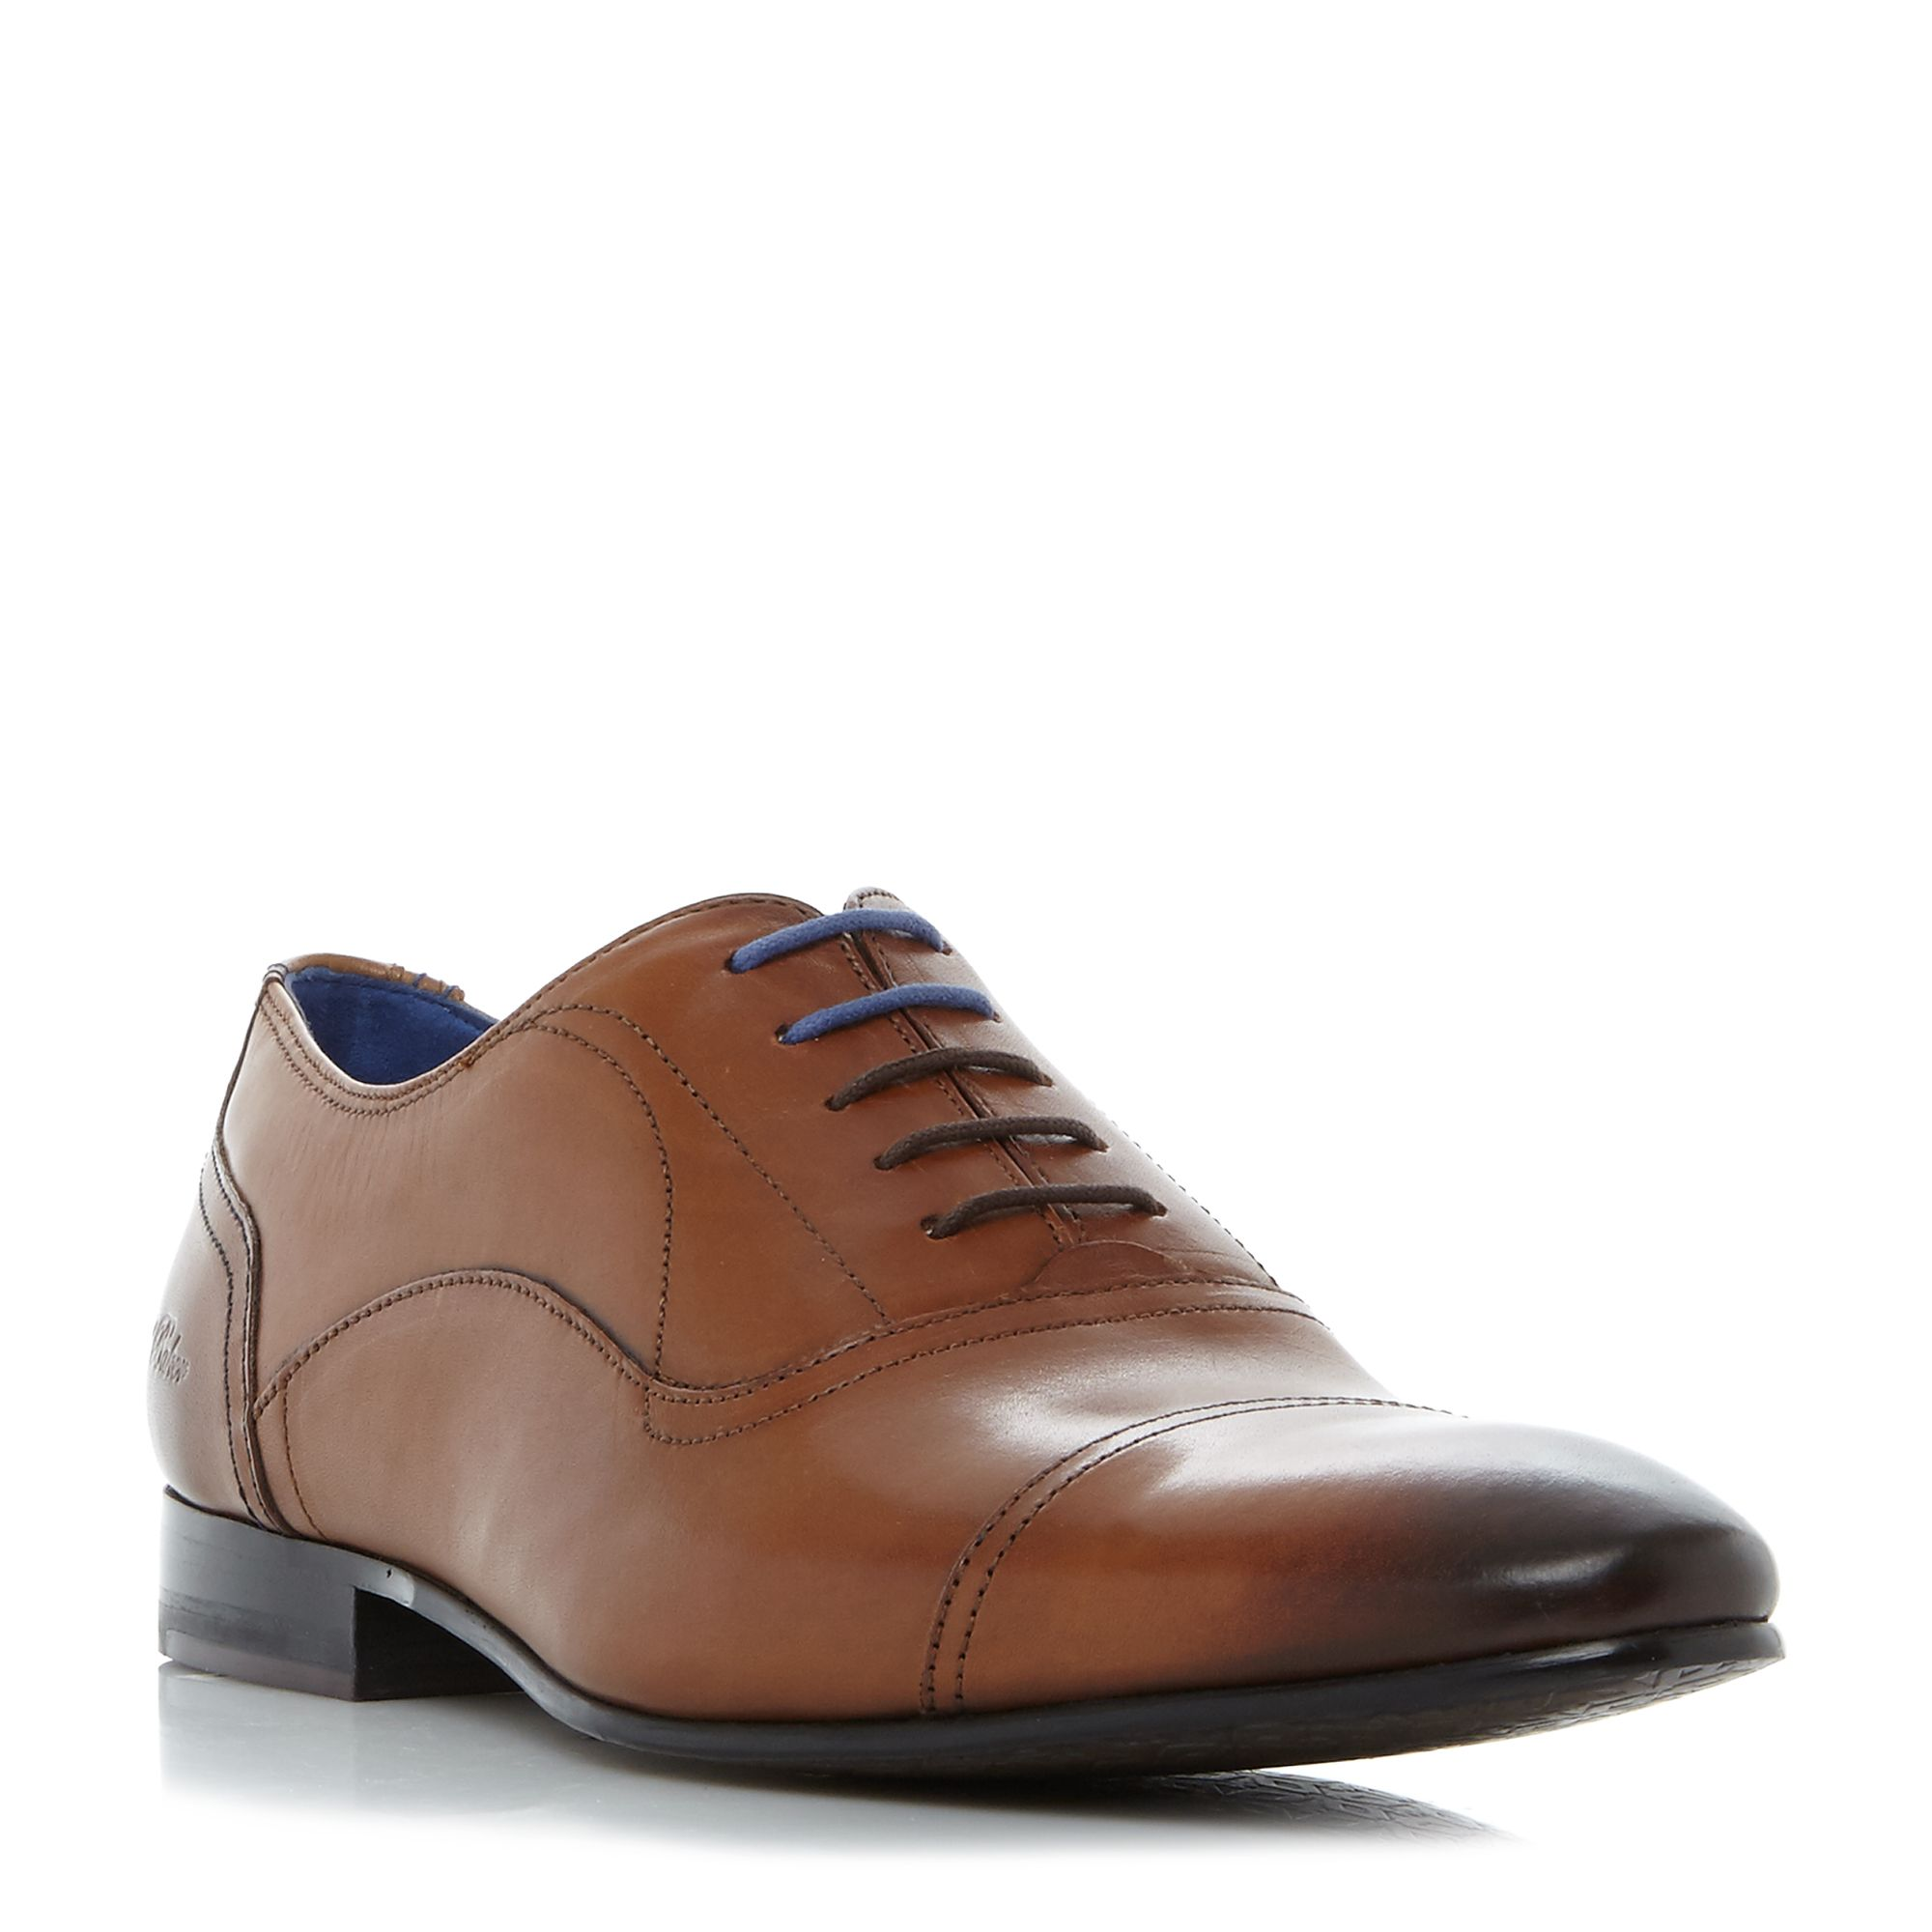 Ted Baker Umbber high shine toecap oxford shoes Tan